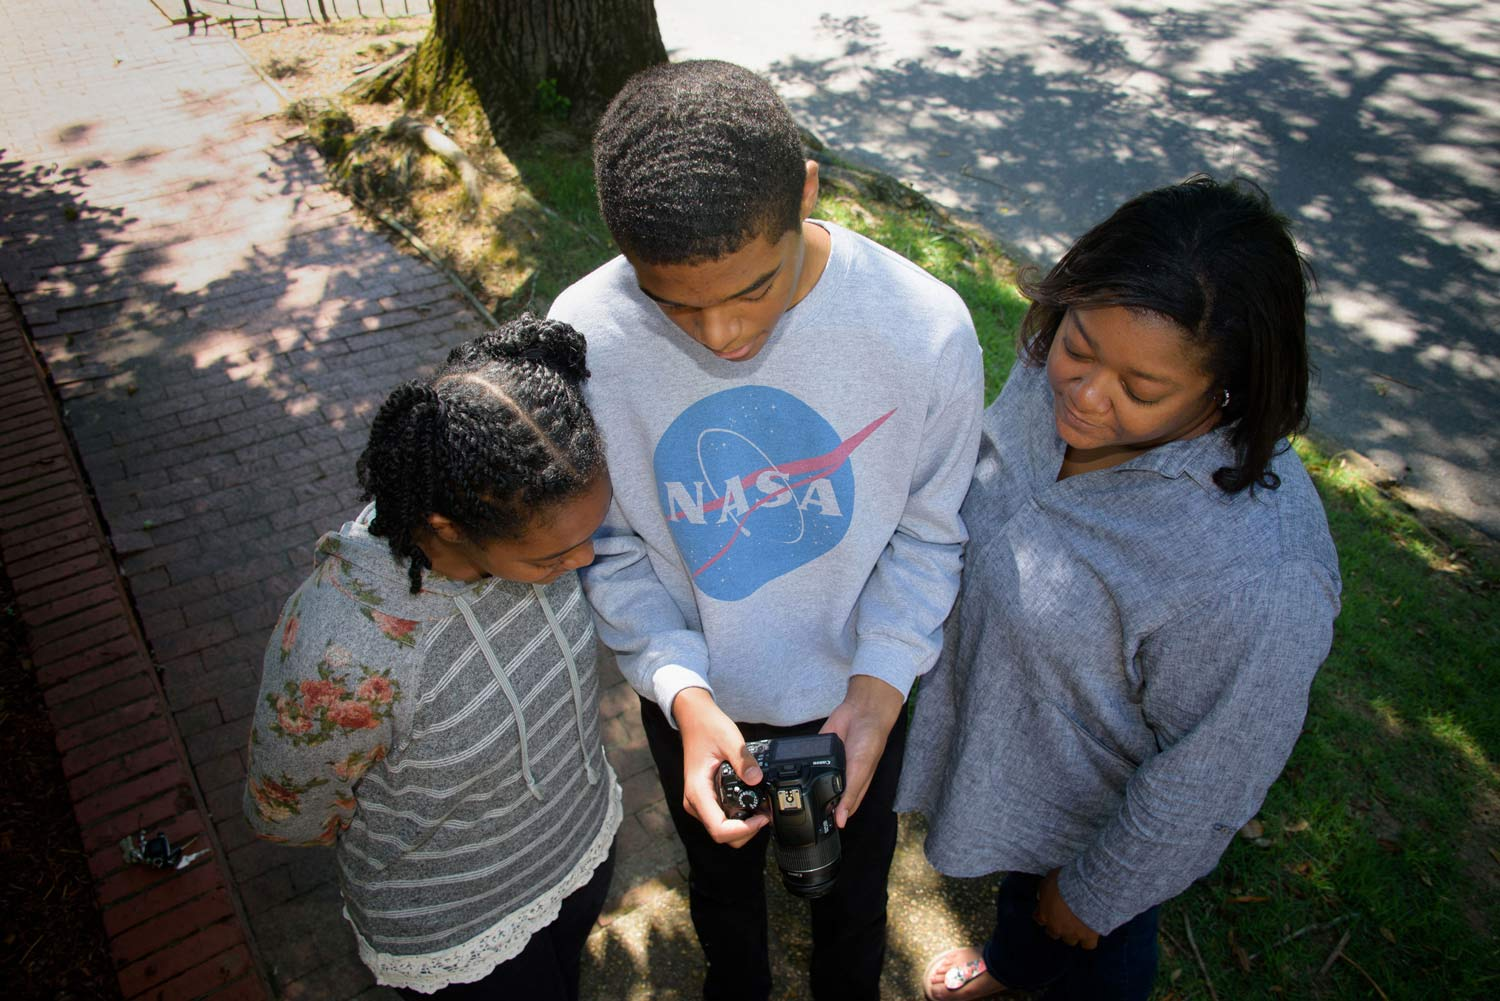 Overhead shot of a young boy holding a camera standing between two women.